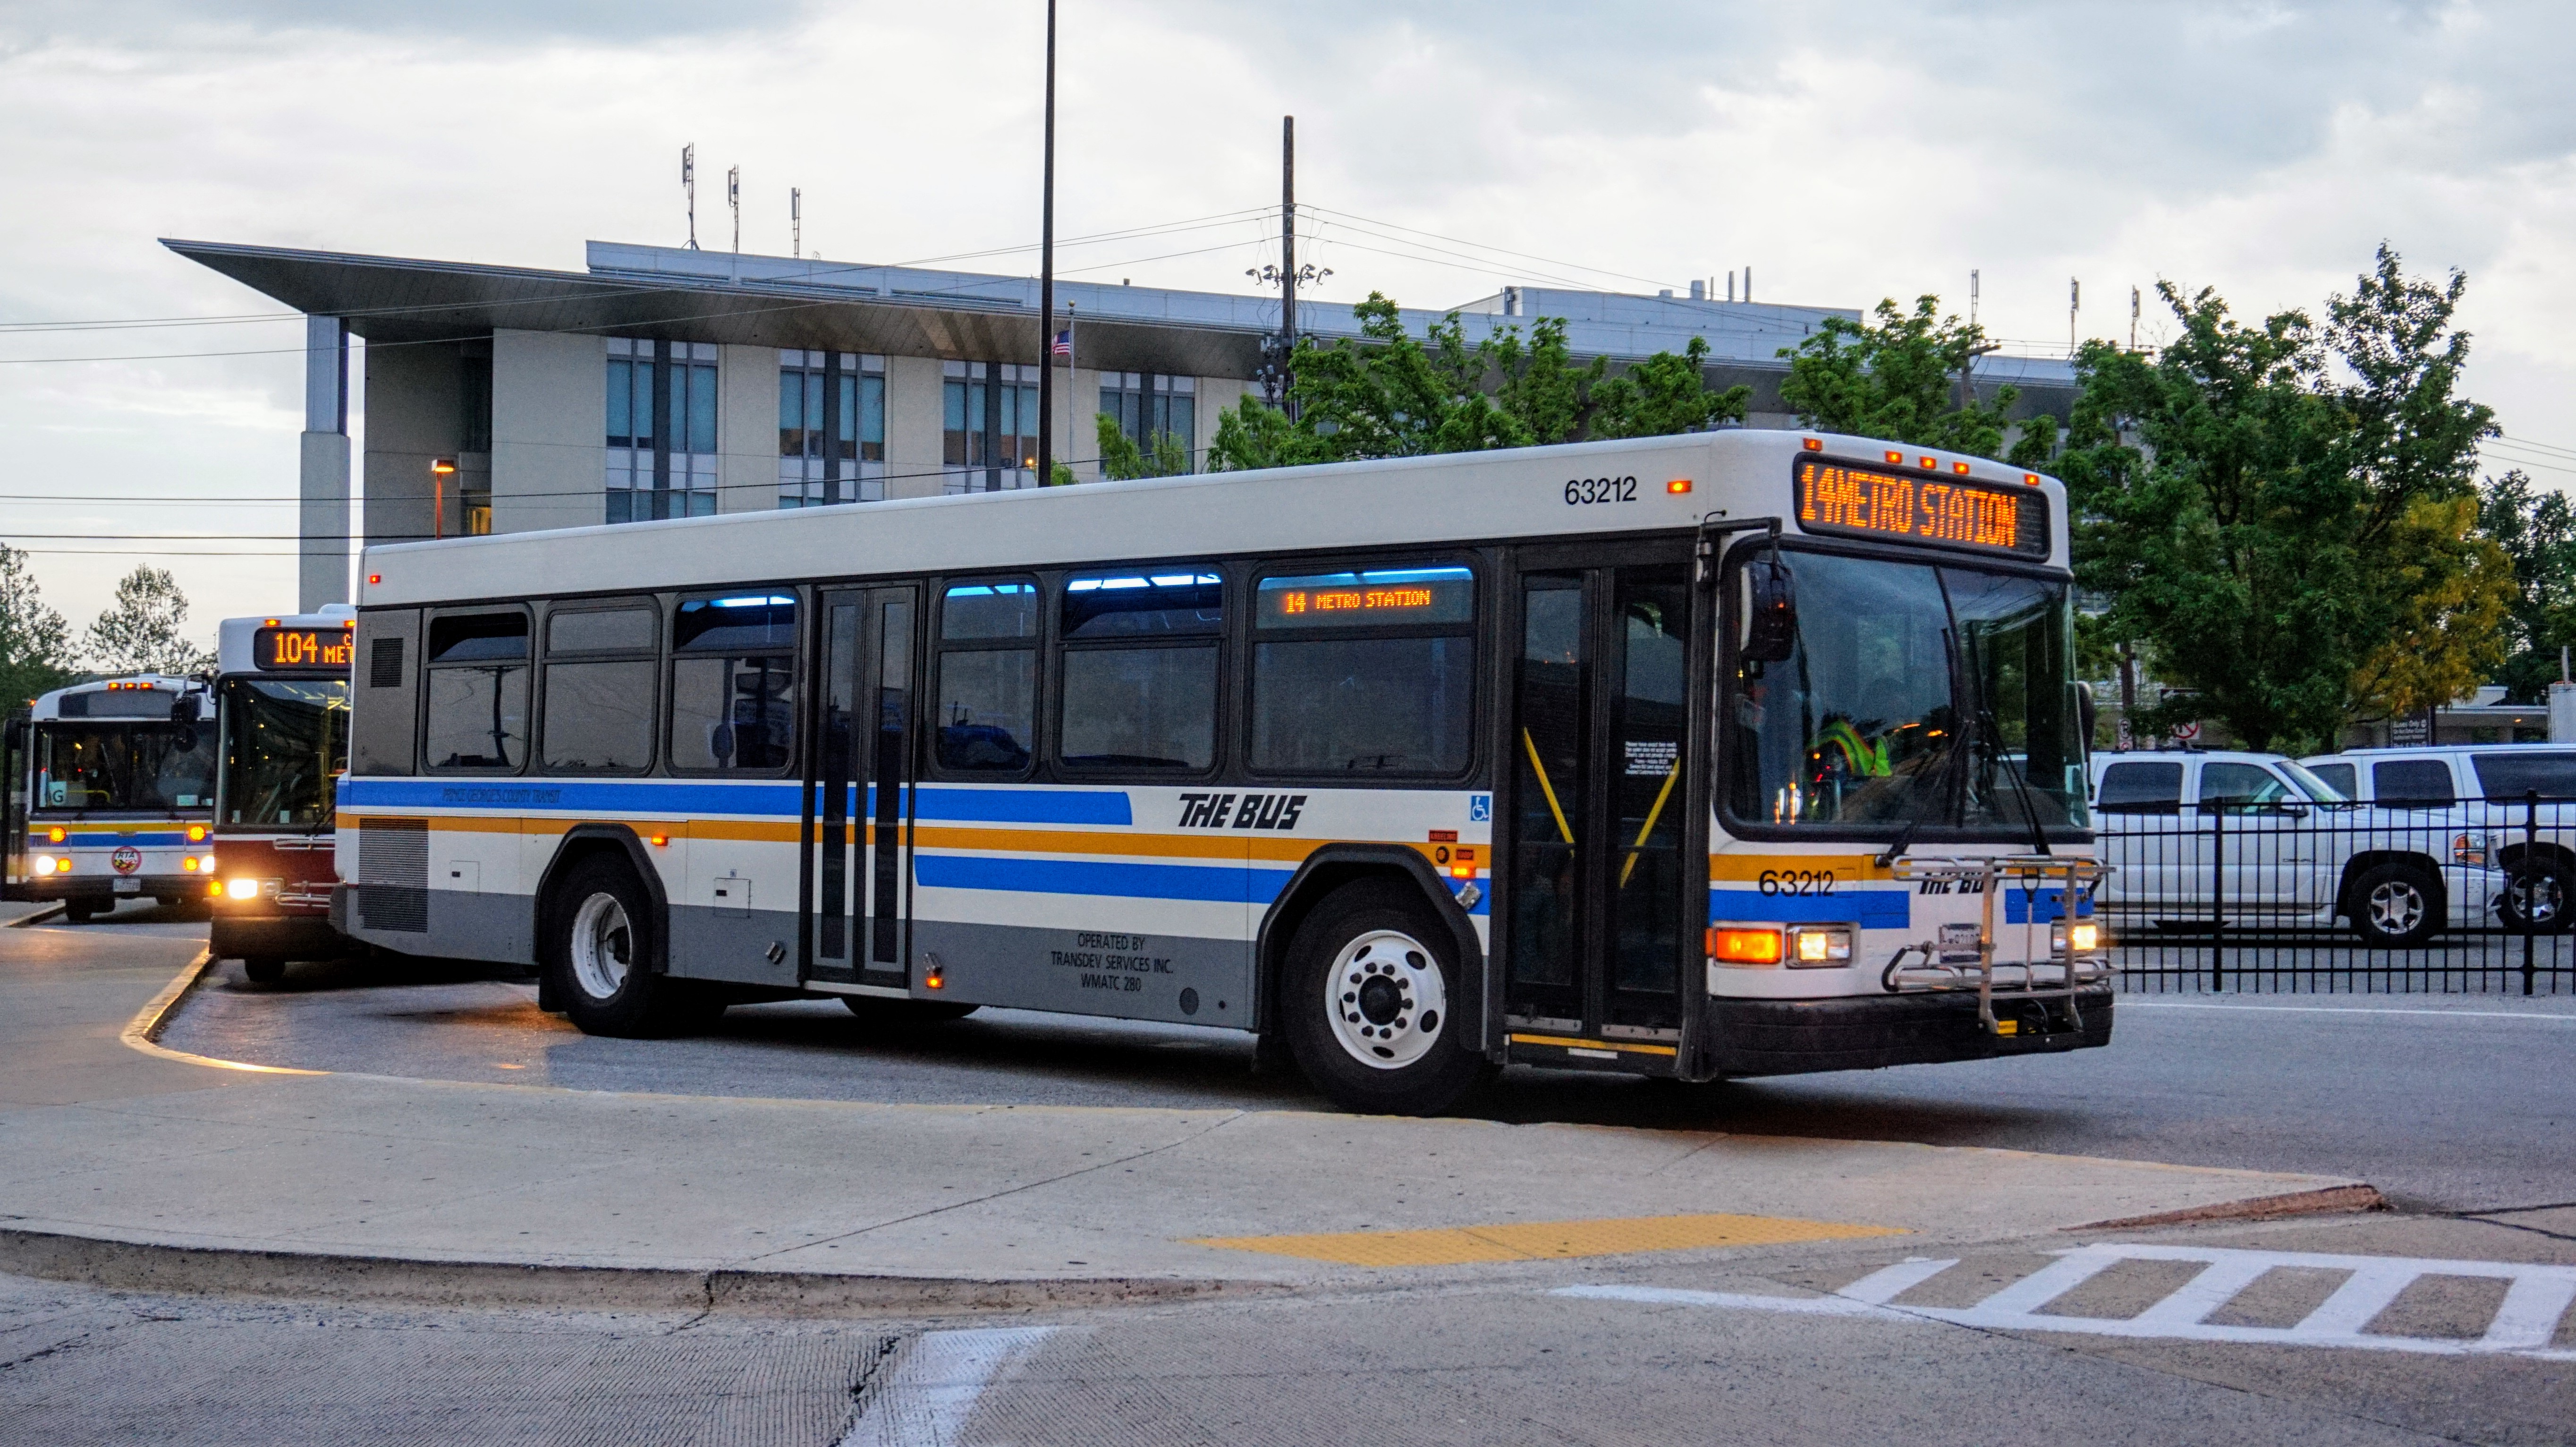 thebus (prince george's county) - wikipedia